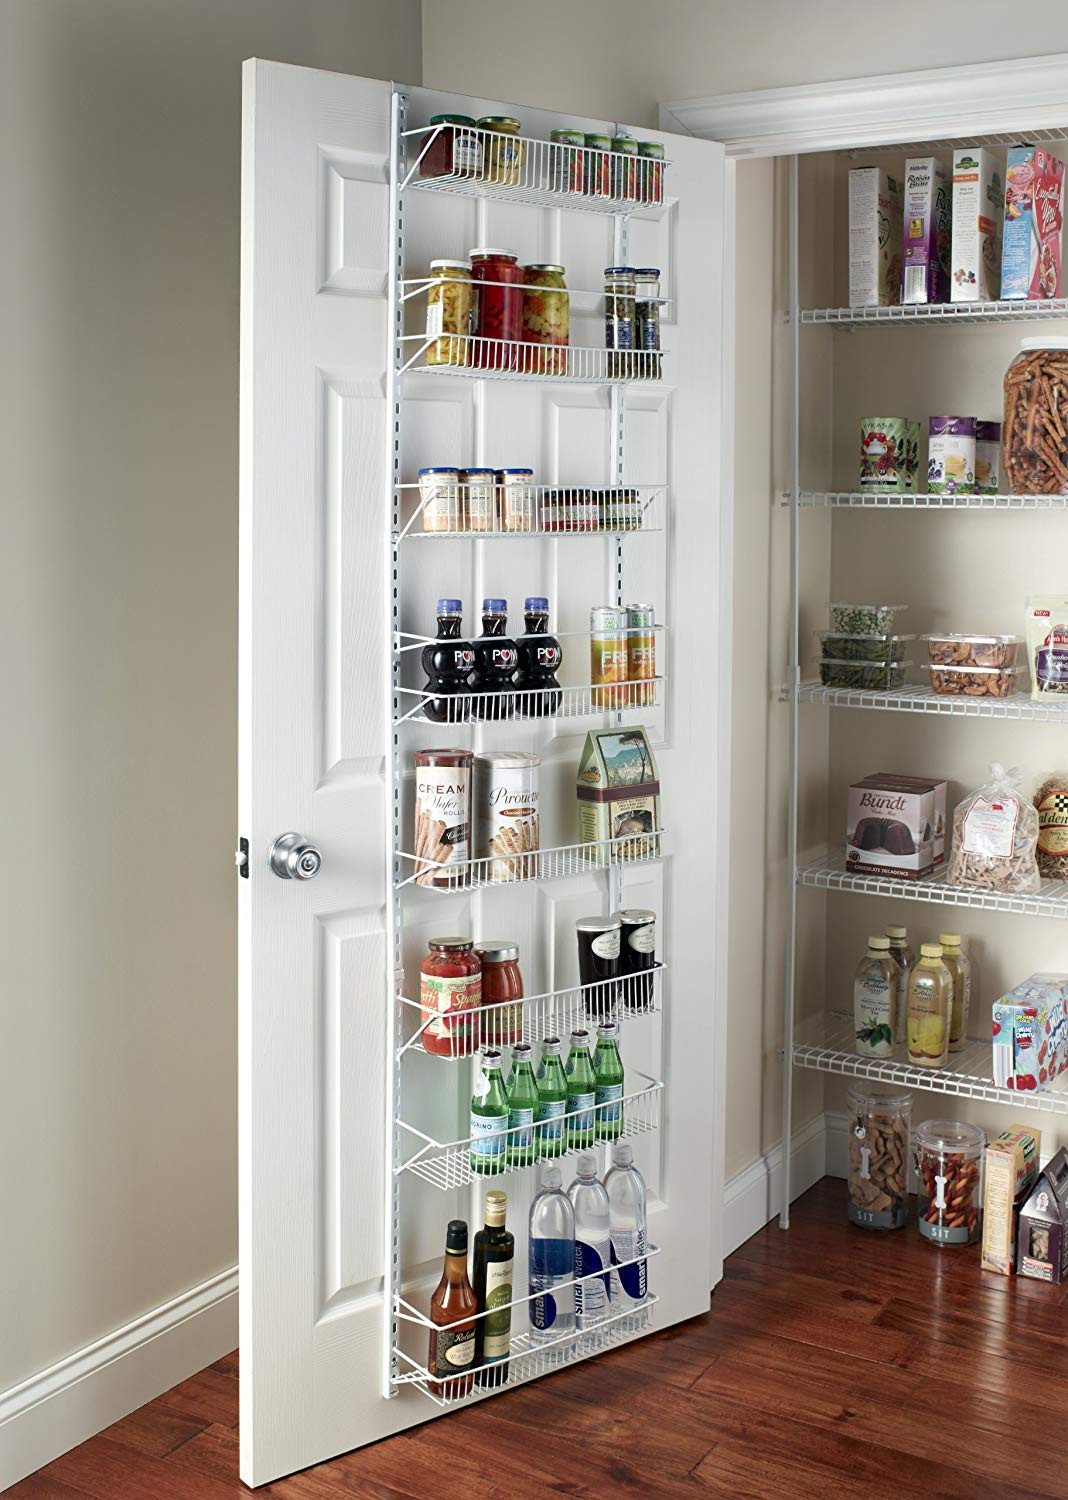 Best ideas about Kitchen Pantry Shelving . Save or Pin Wall Rack Closet Organizer Pantry Adjustable Floating Now.